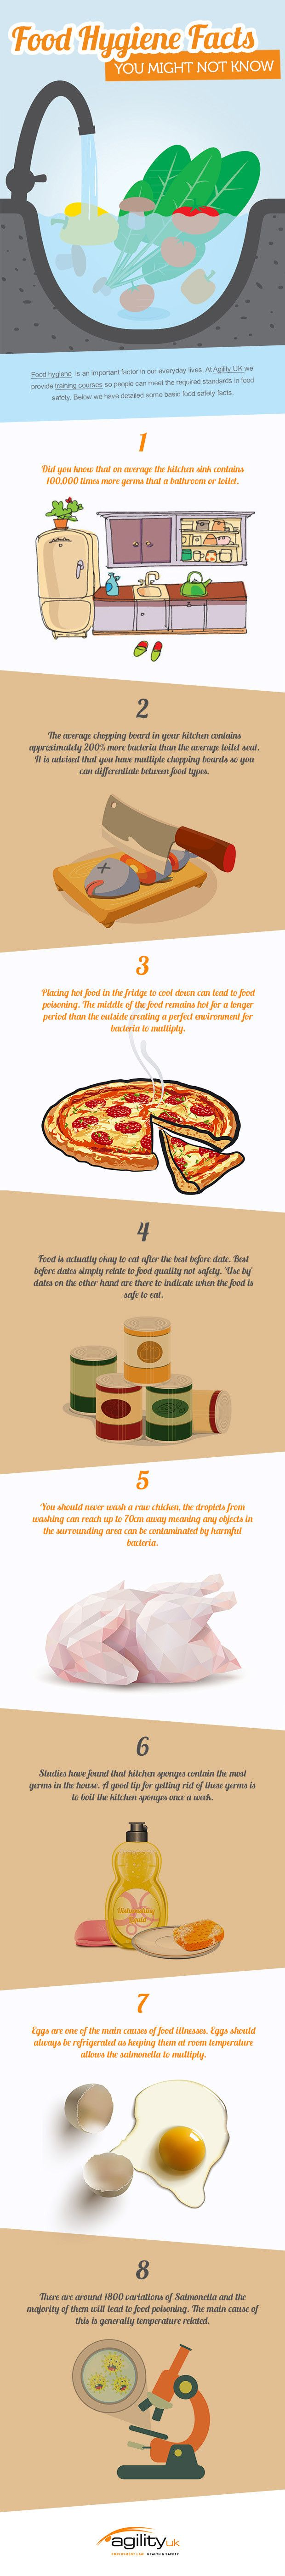 Food Hygiene Facts You Might Not Know #infographic